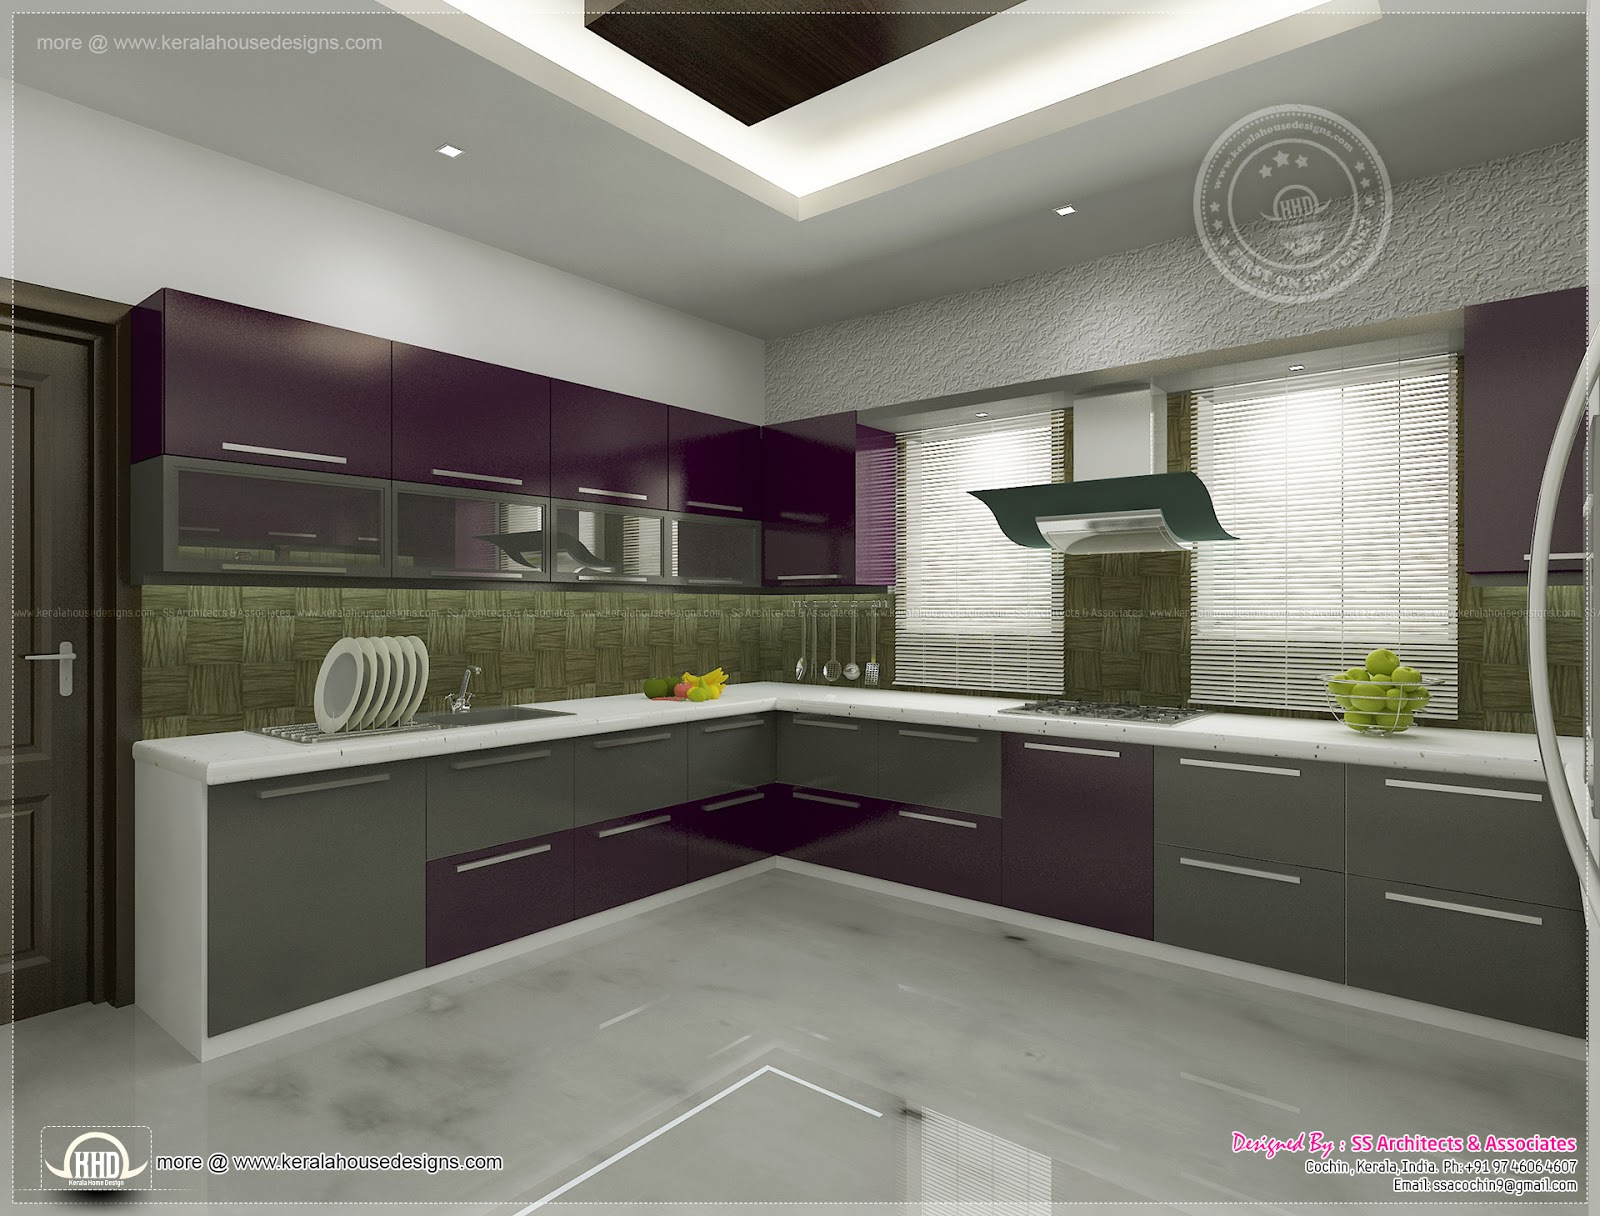 Kitchen interior views by ss architects cochin kerala for Interior designs for home